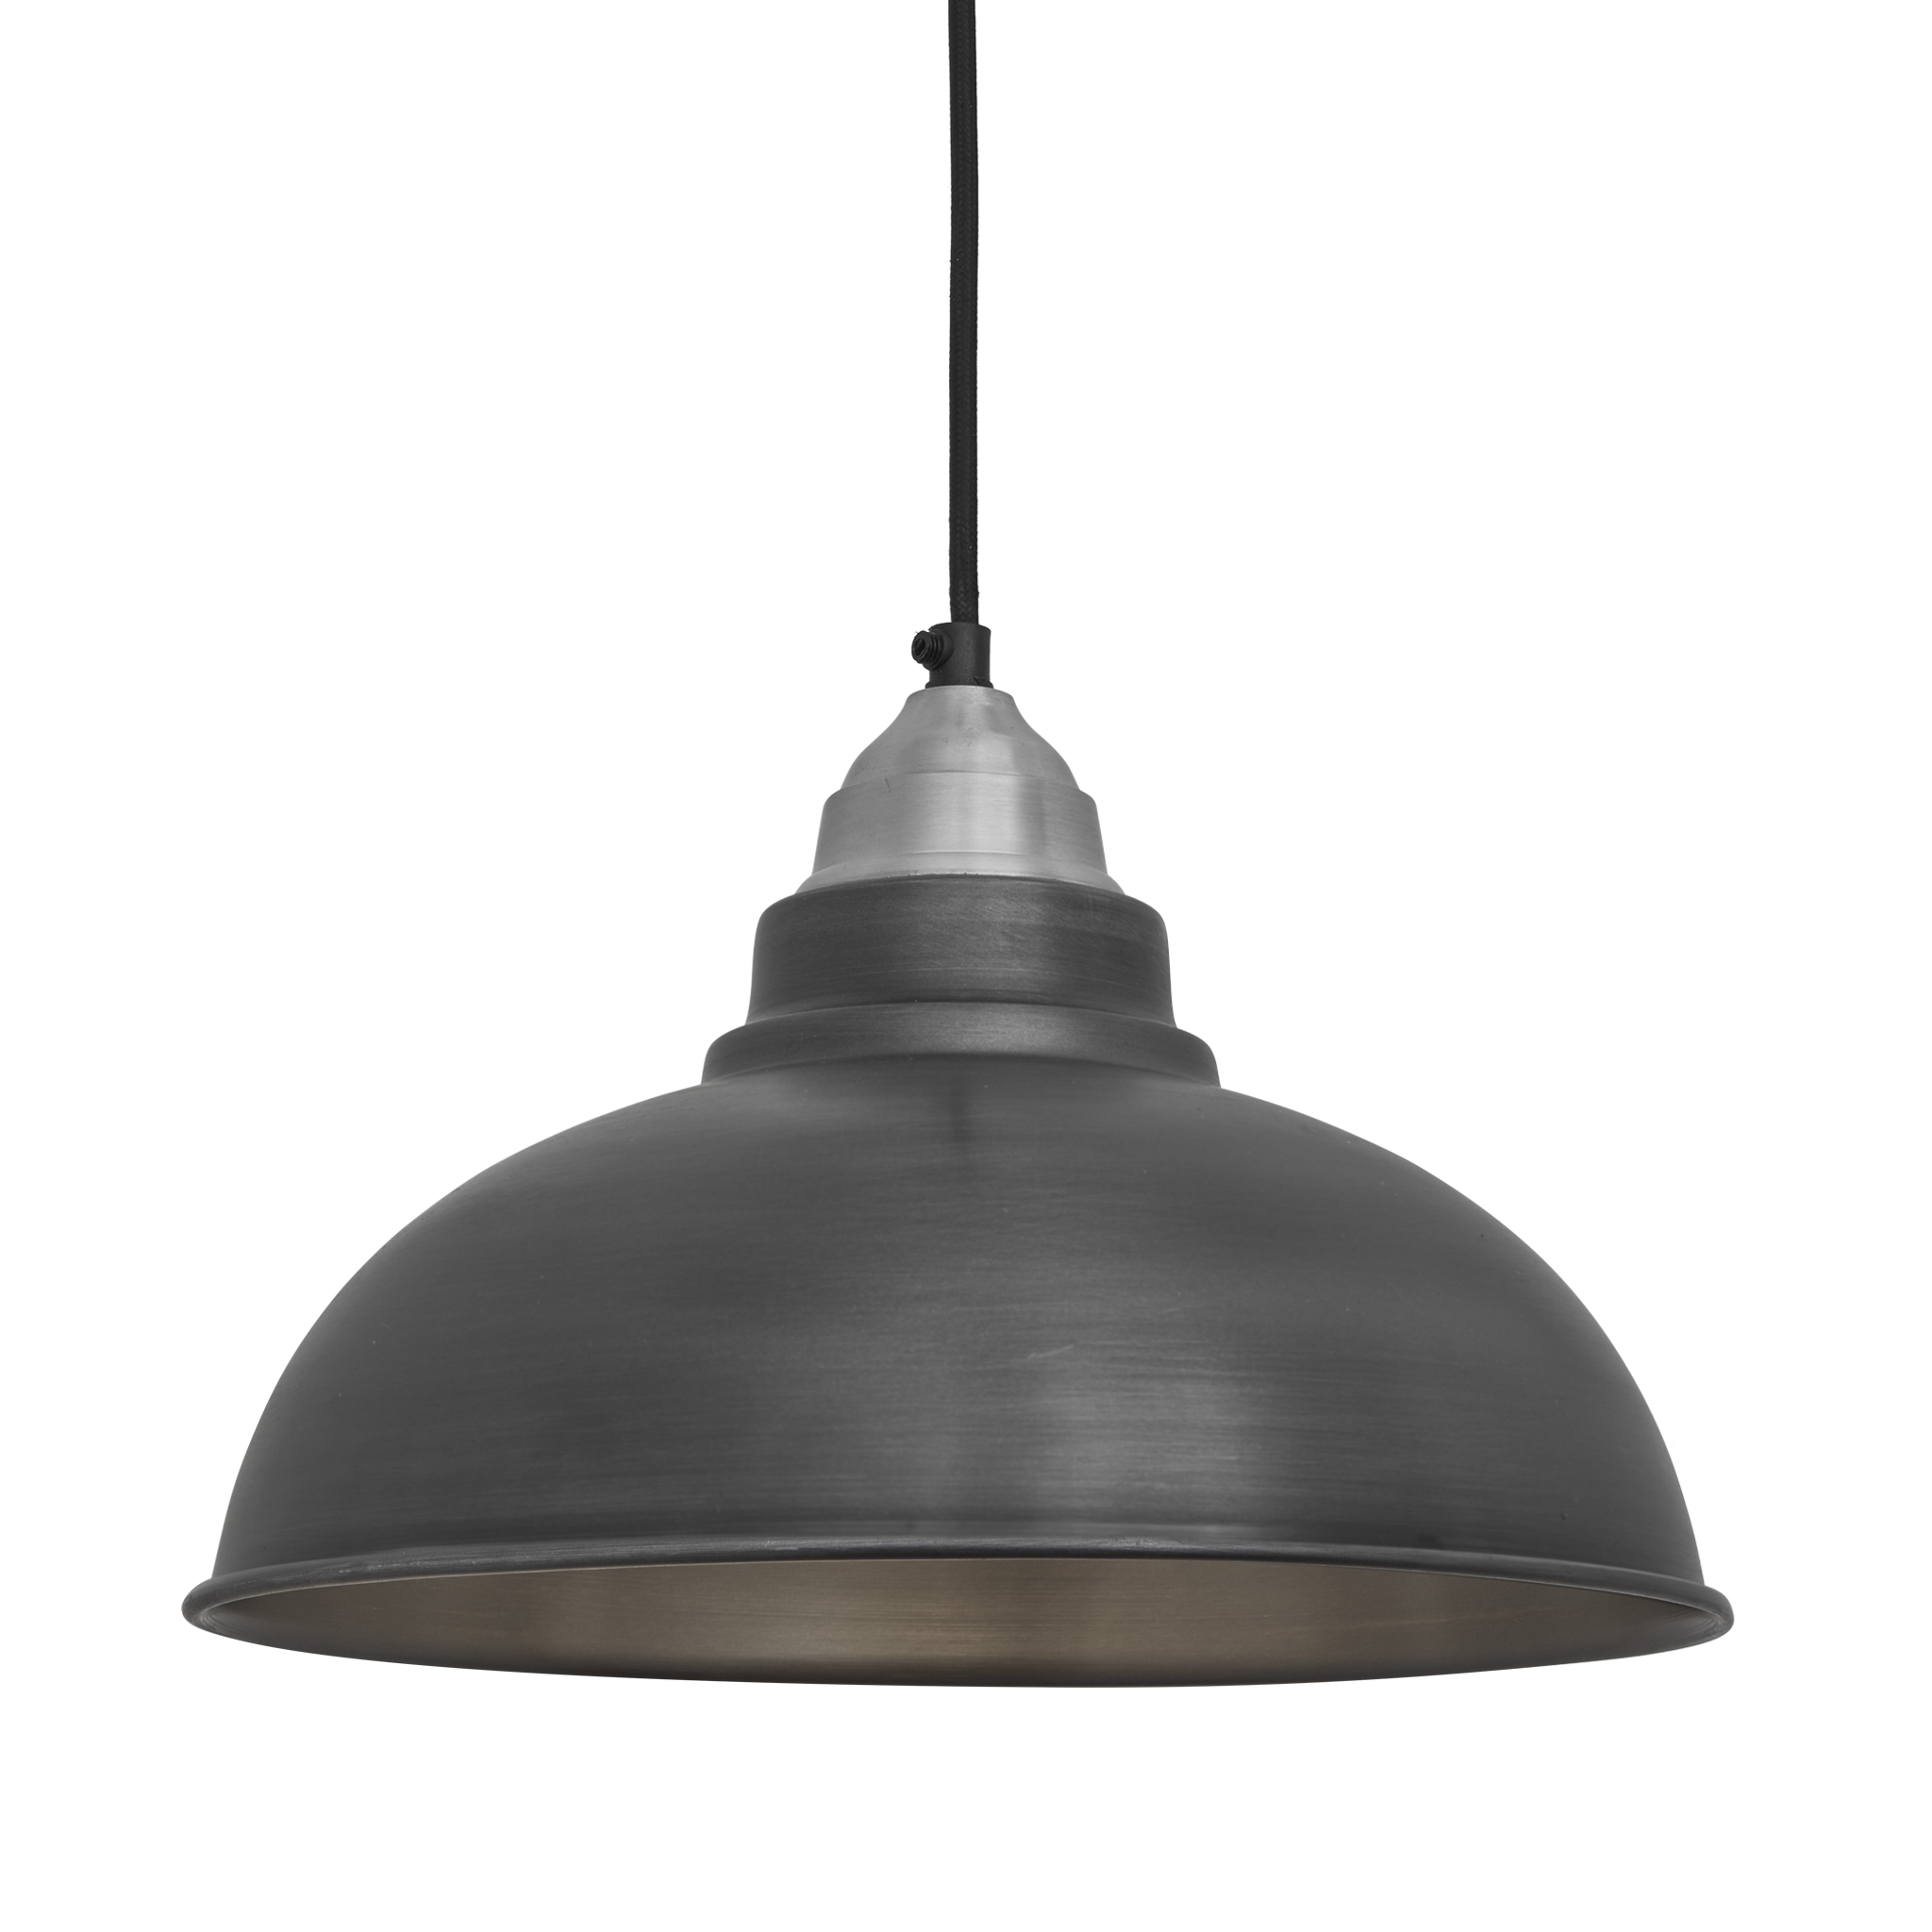 Old factory vintage pendant light dark grey pewter 12 inch old factory vintage pendant light dark grey pewter 12 inch arubaitofo Image collections